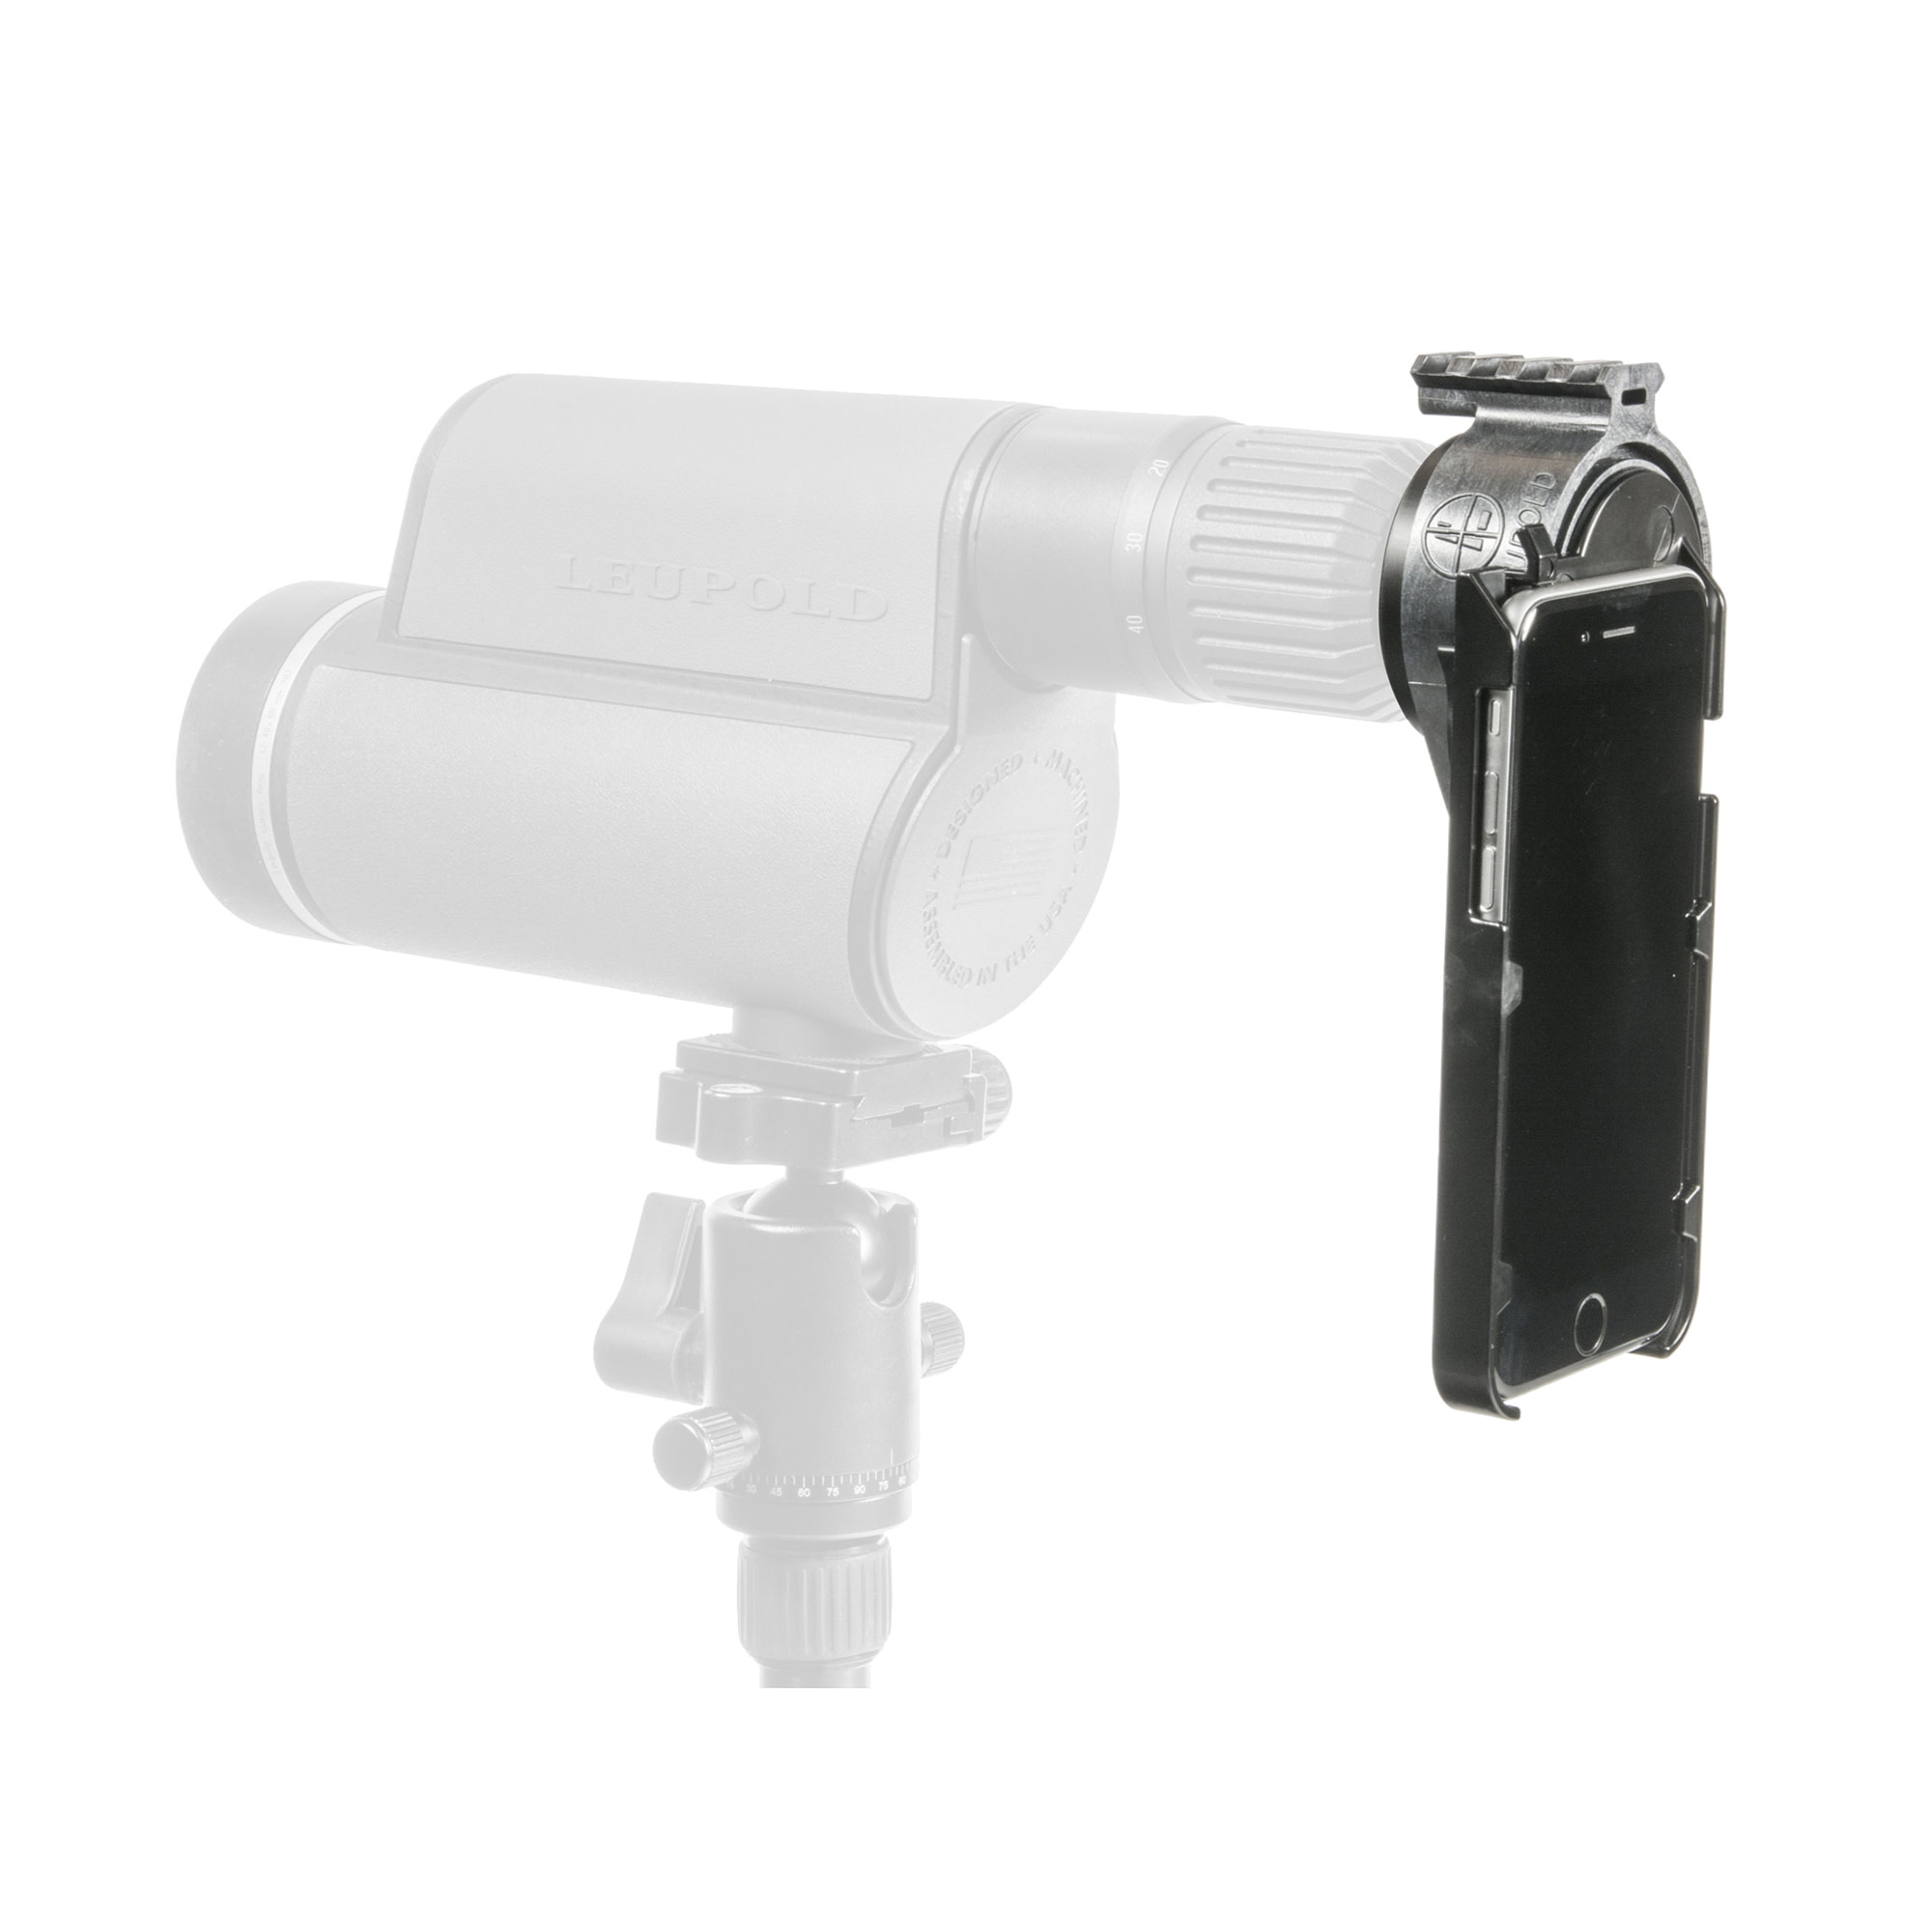 Leupold iPhone 6 Spotting Scope Adapter Kit